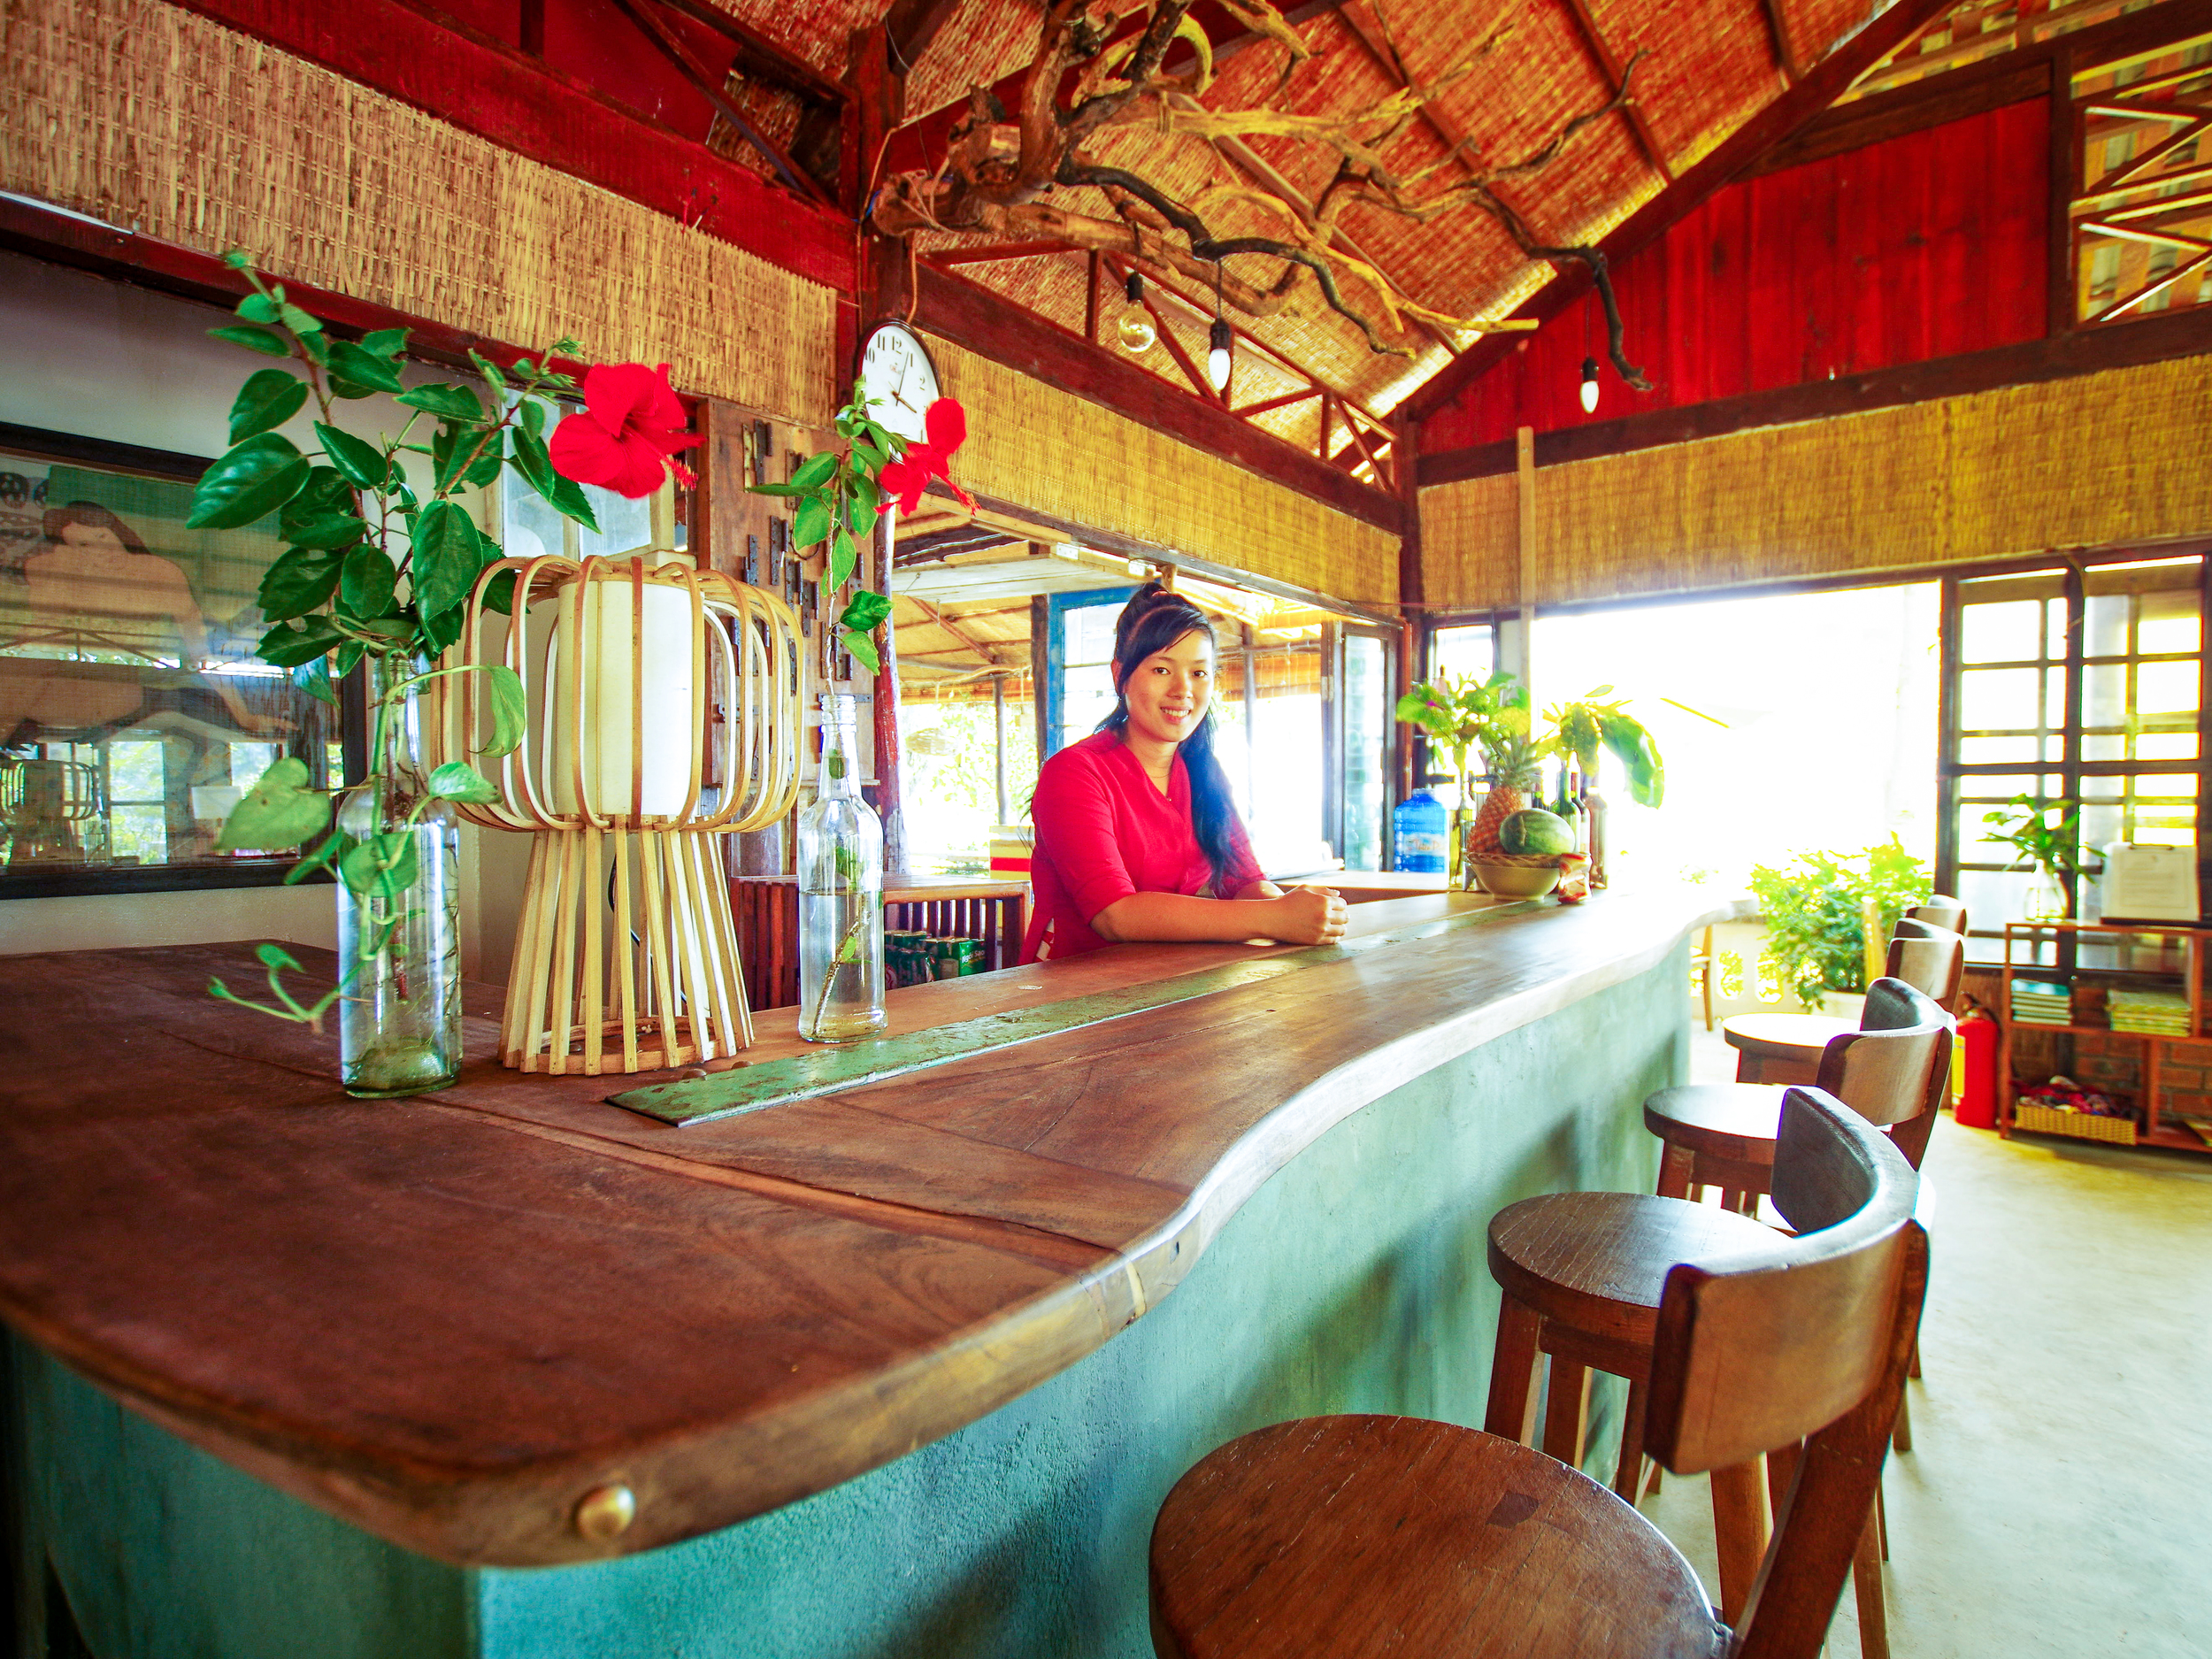 phuo-quoc-bamboo-cottage-47.jpg